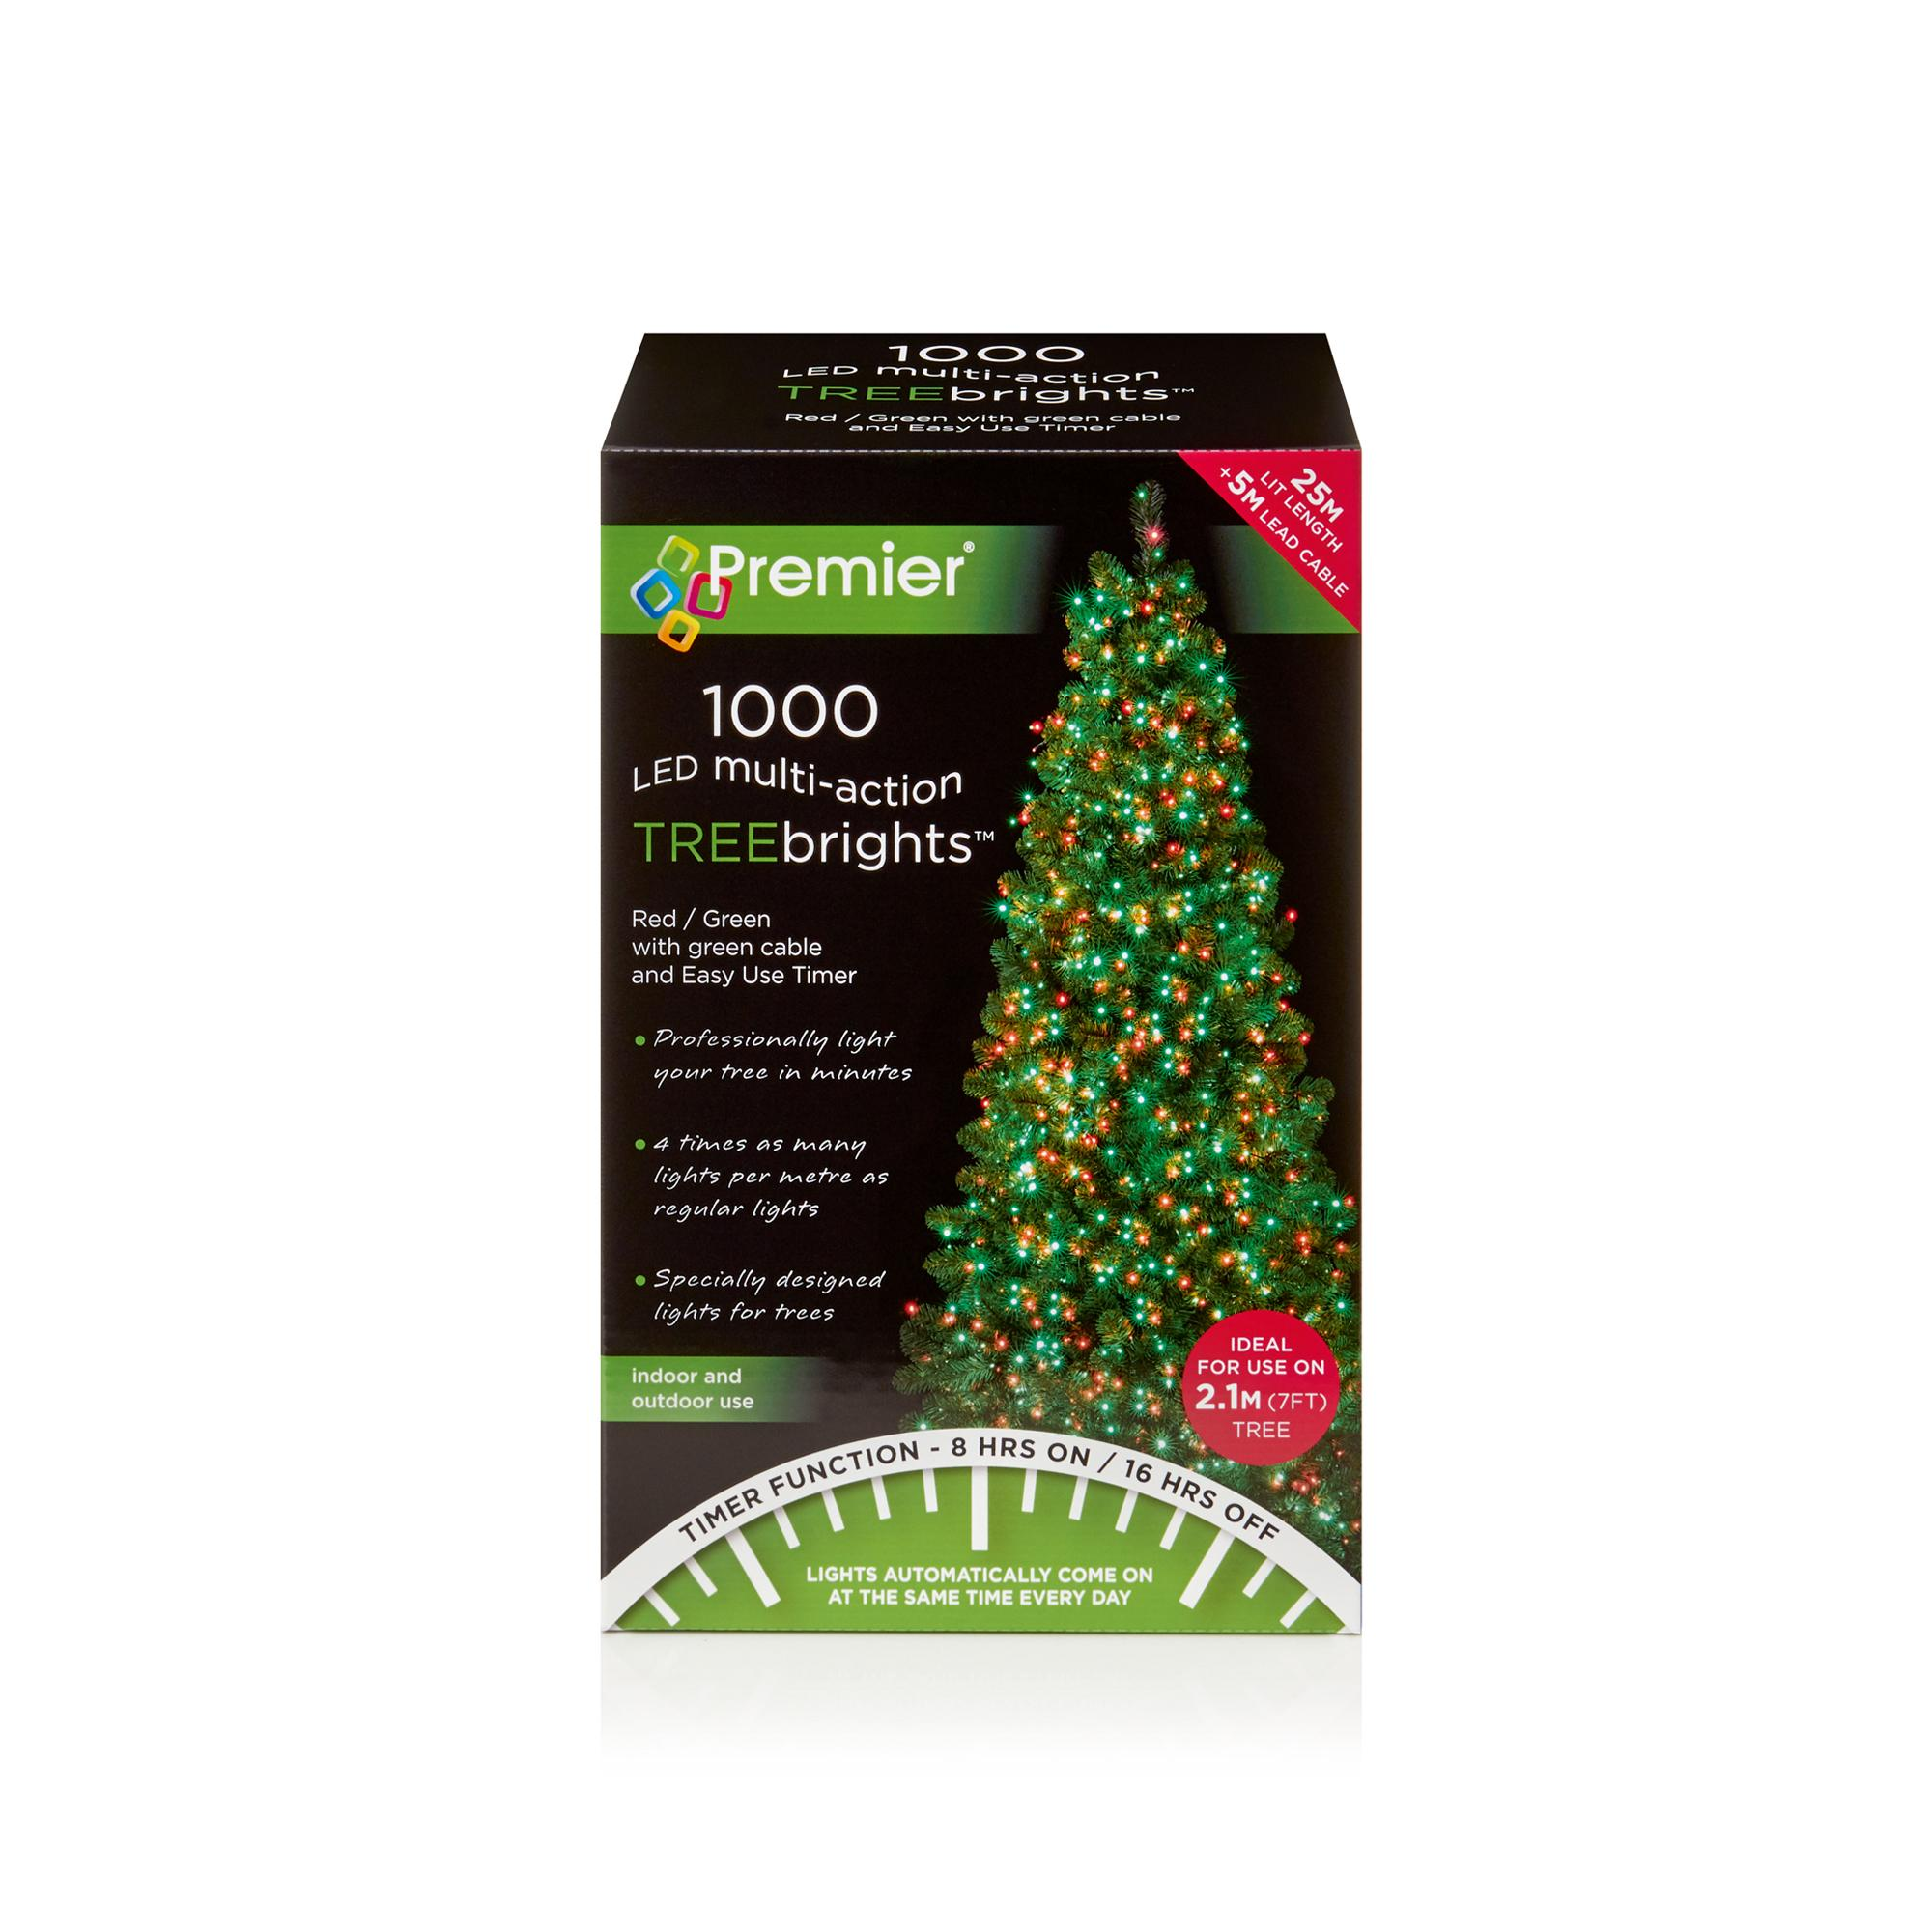 1000 Red Green Led Christmas Tree Lights Cancer Research Uk Online Shop